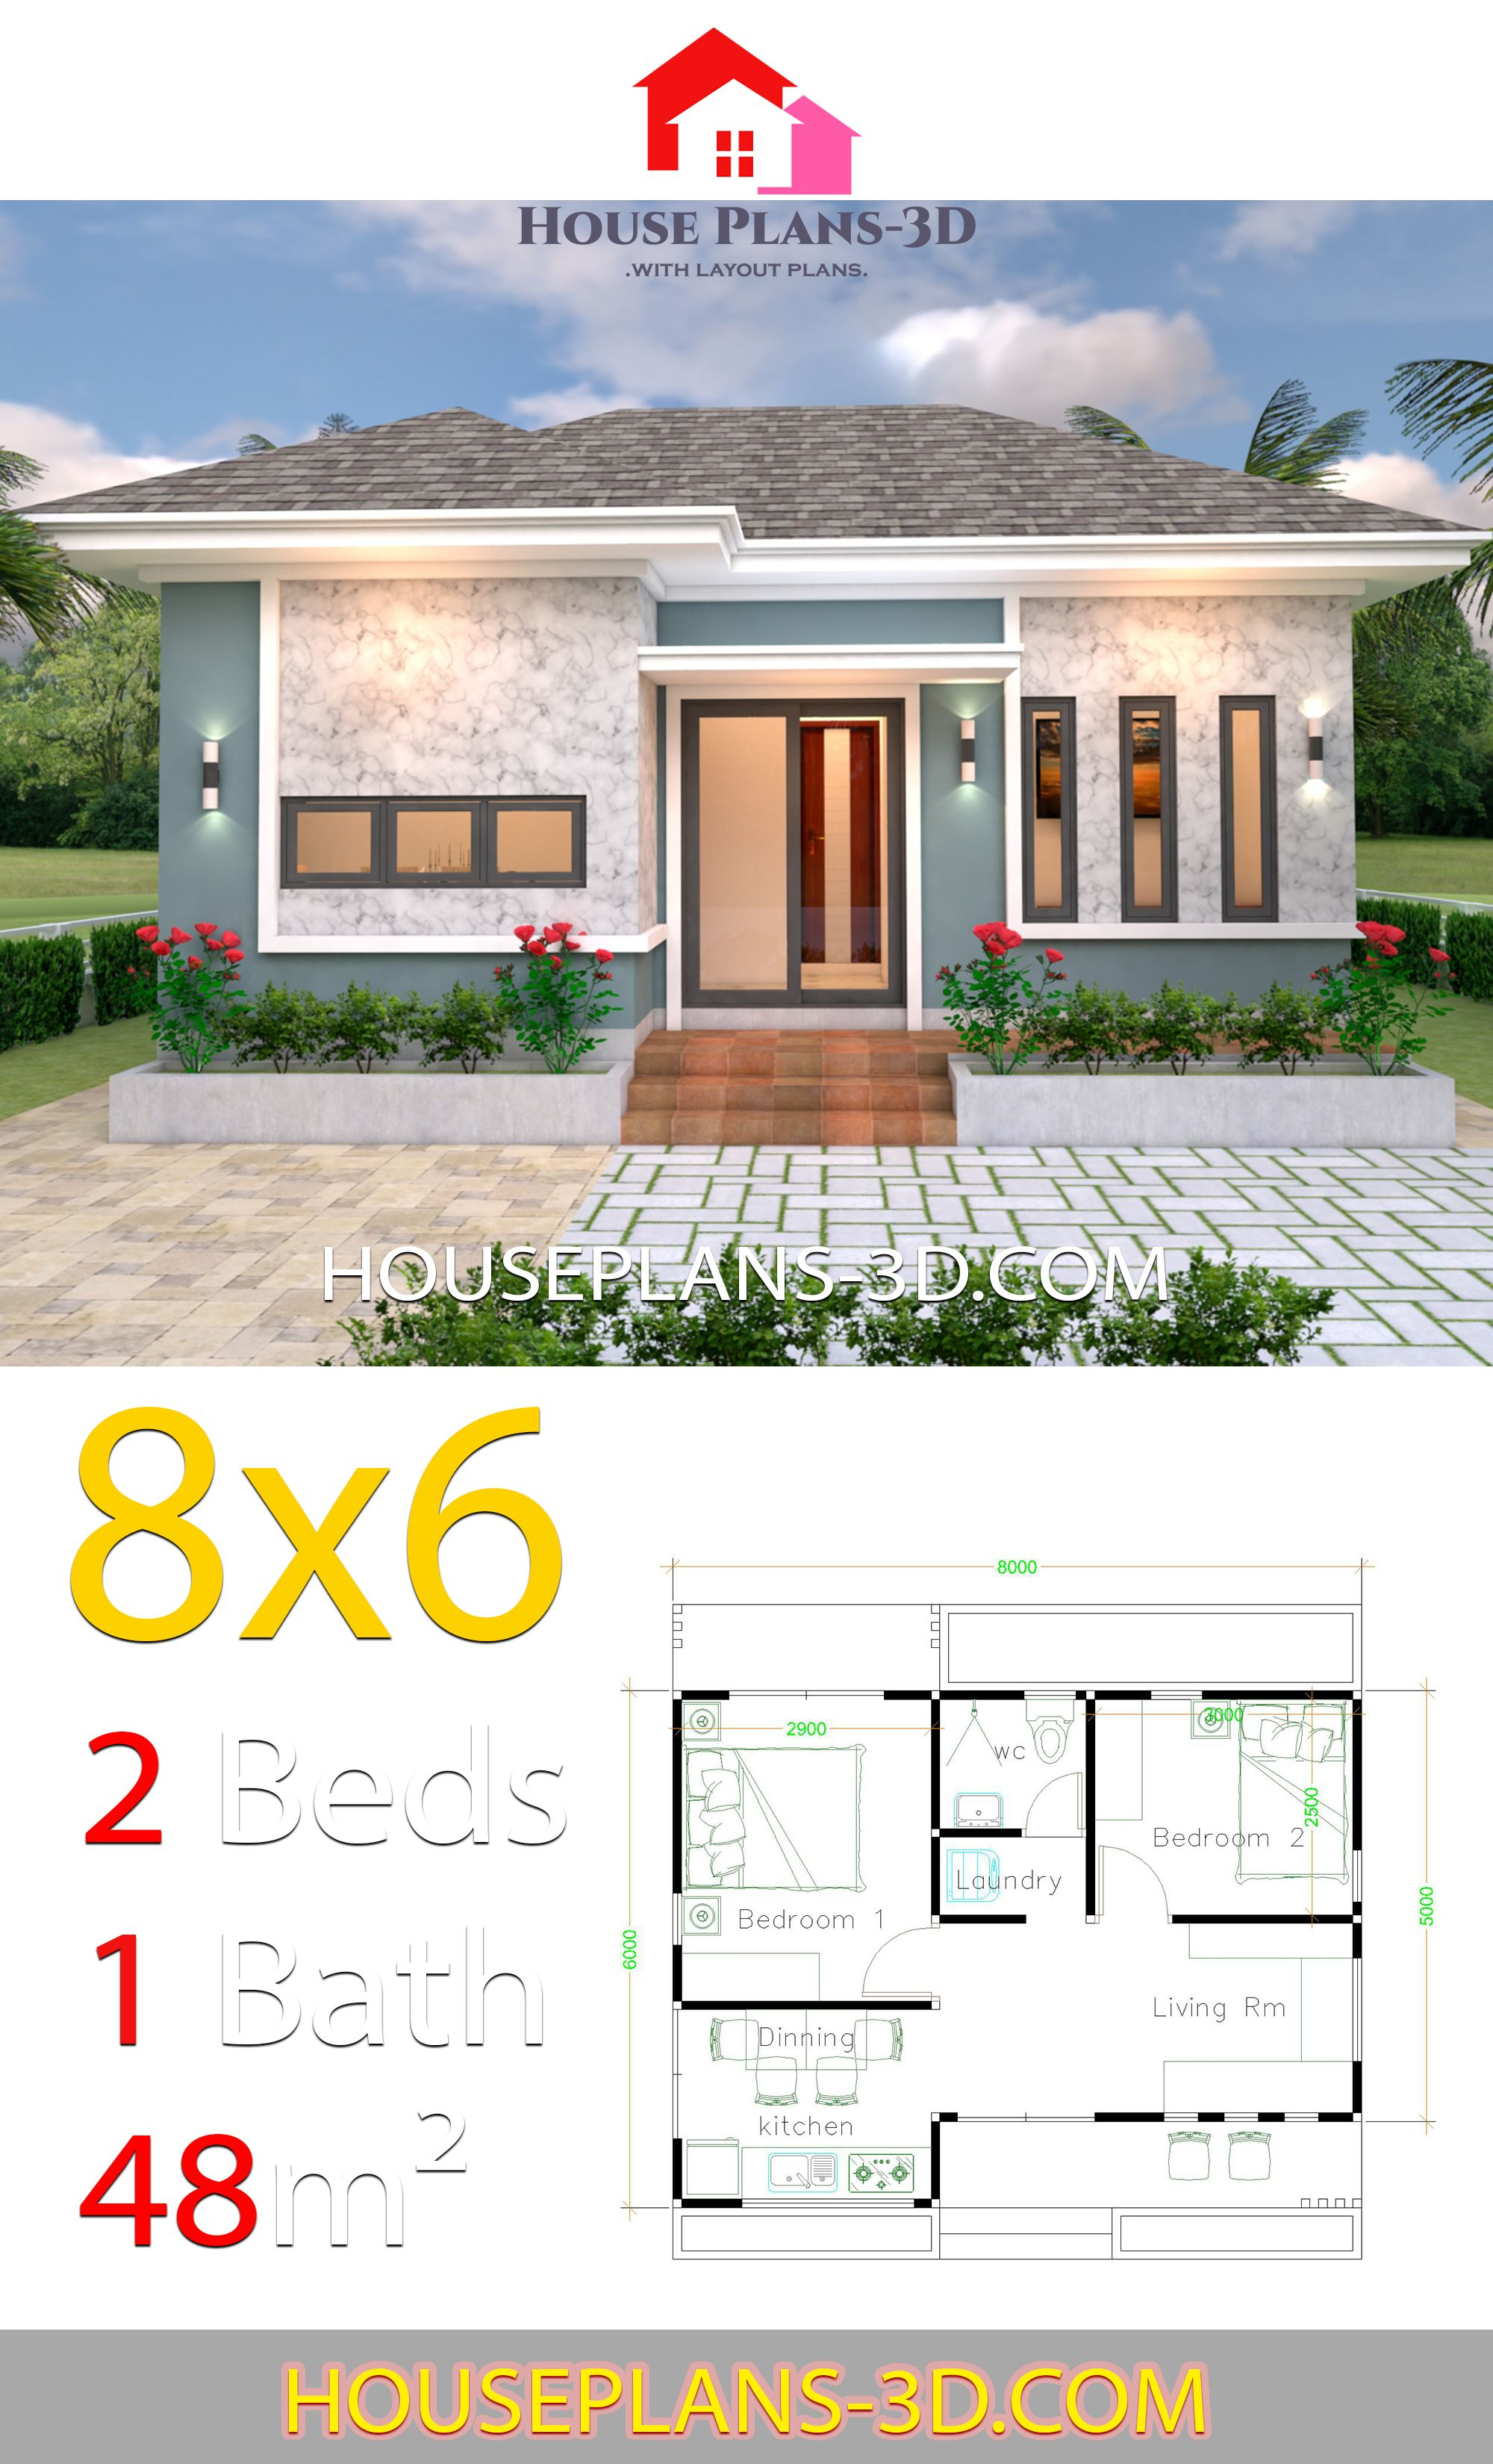 House Plans 3d 8x6 With 2 Bedrooms Hip Roof House Plans 3d House Plans Dream House Plans Affordable House Plans